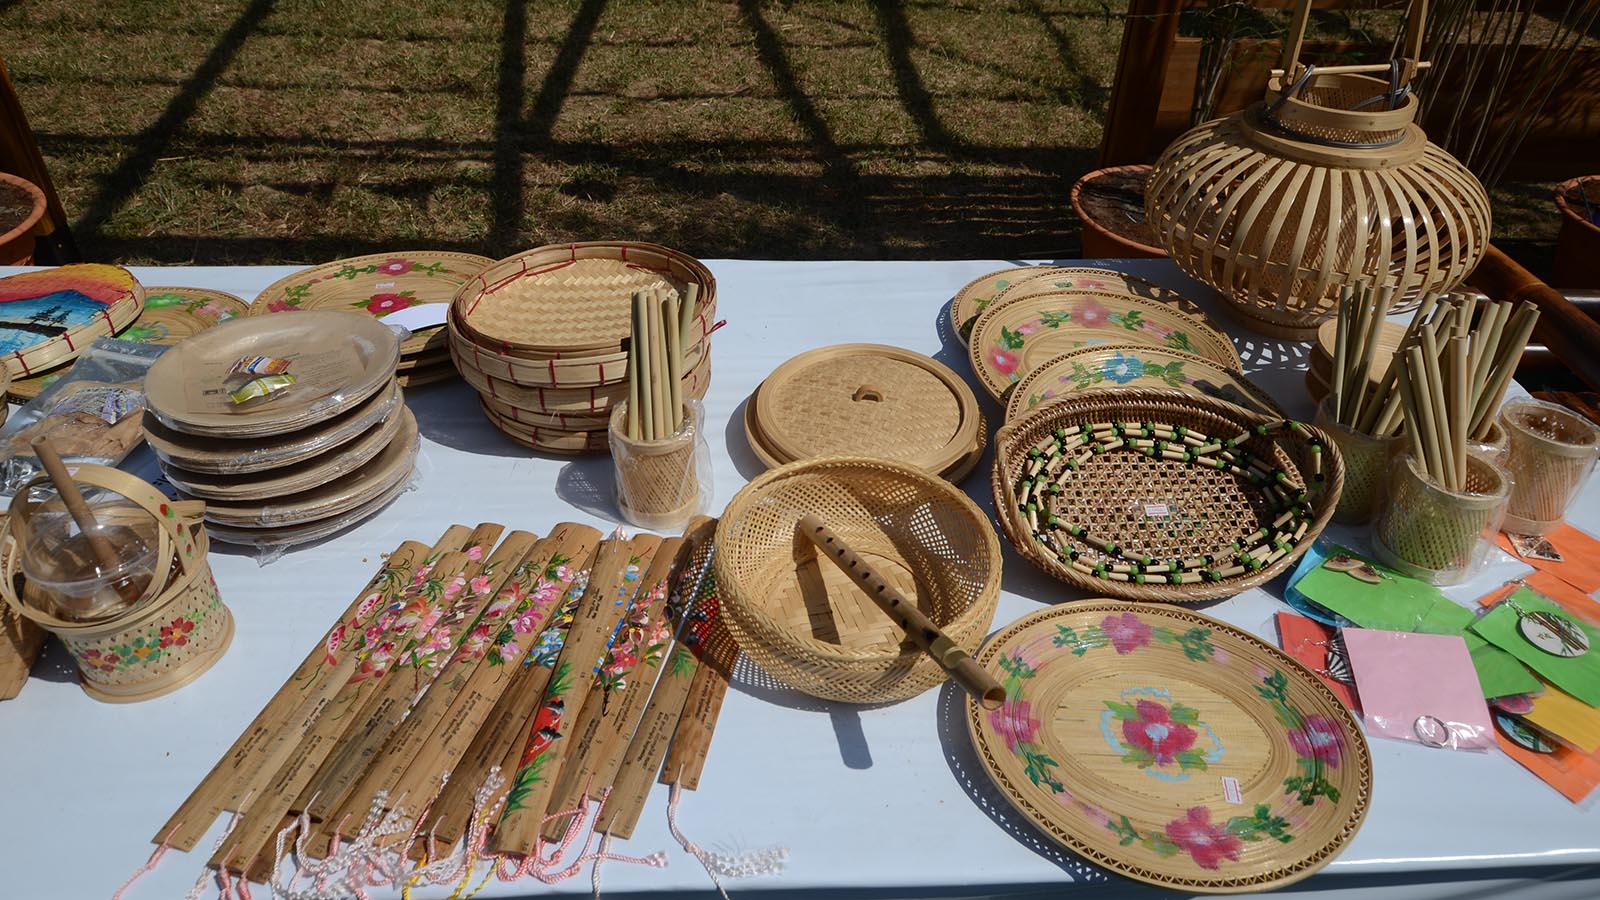 Handmade bamboo products displayed in a market. Photo: Phoe Khwar